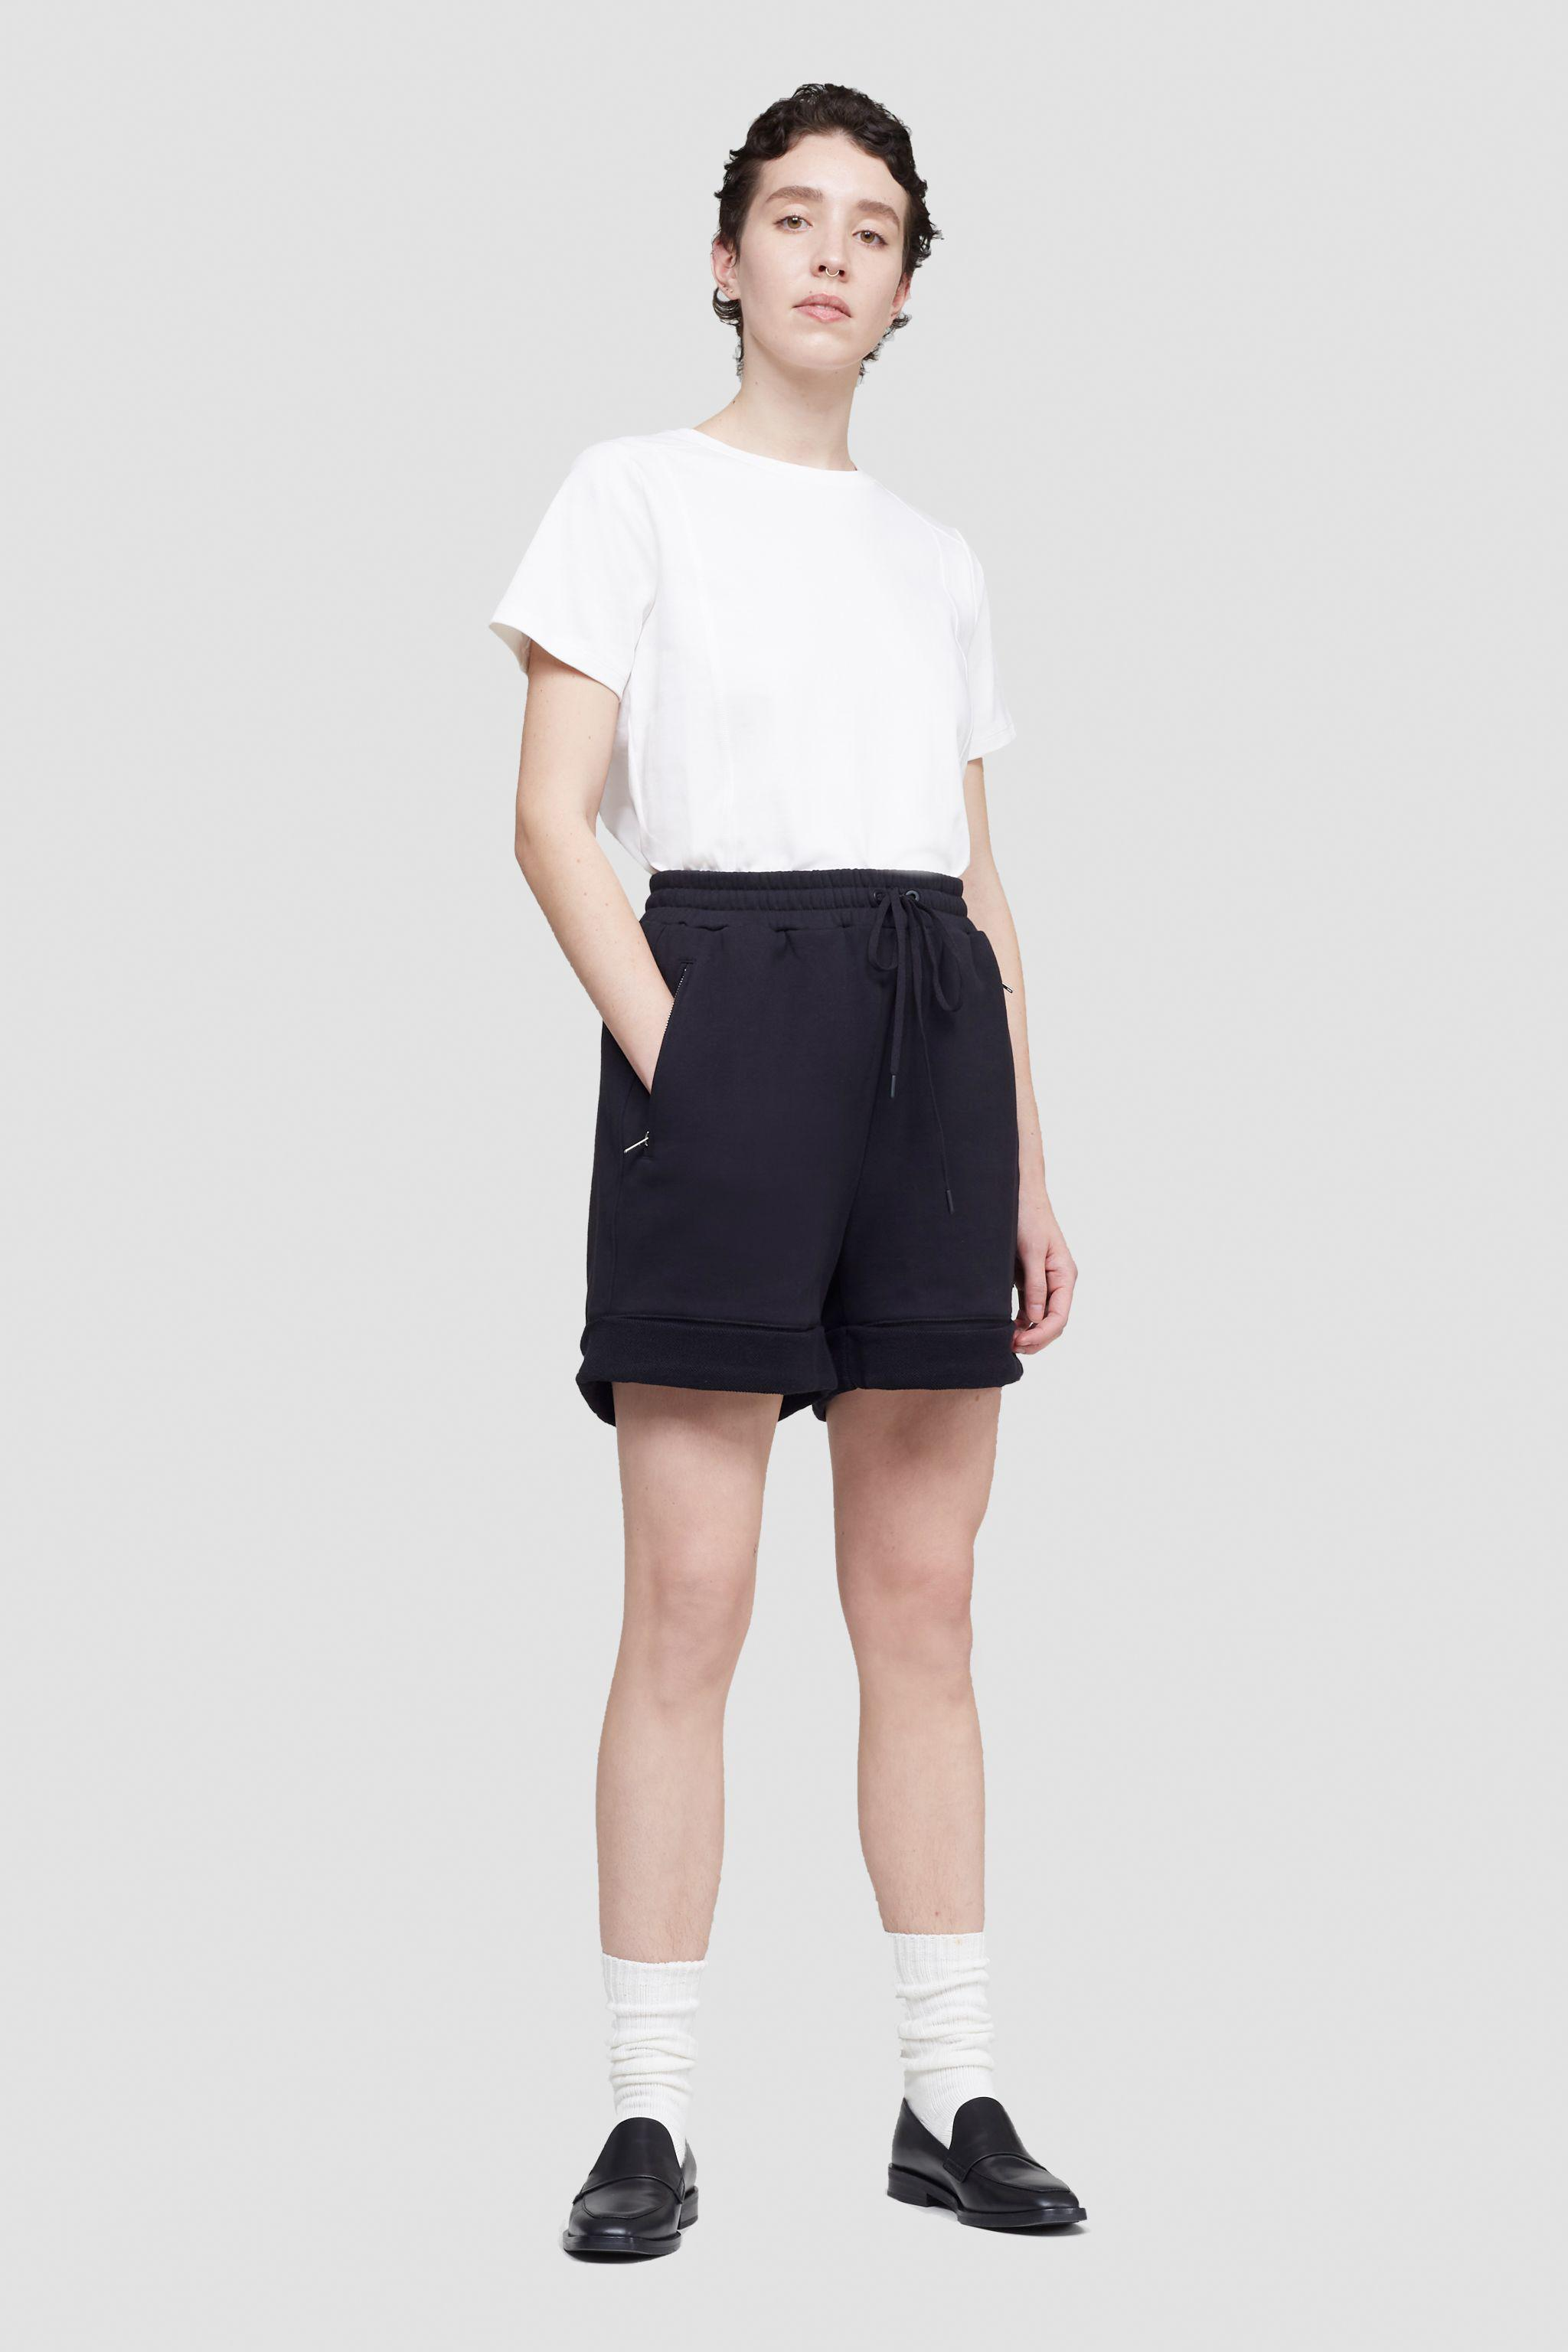 The Everyday Short